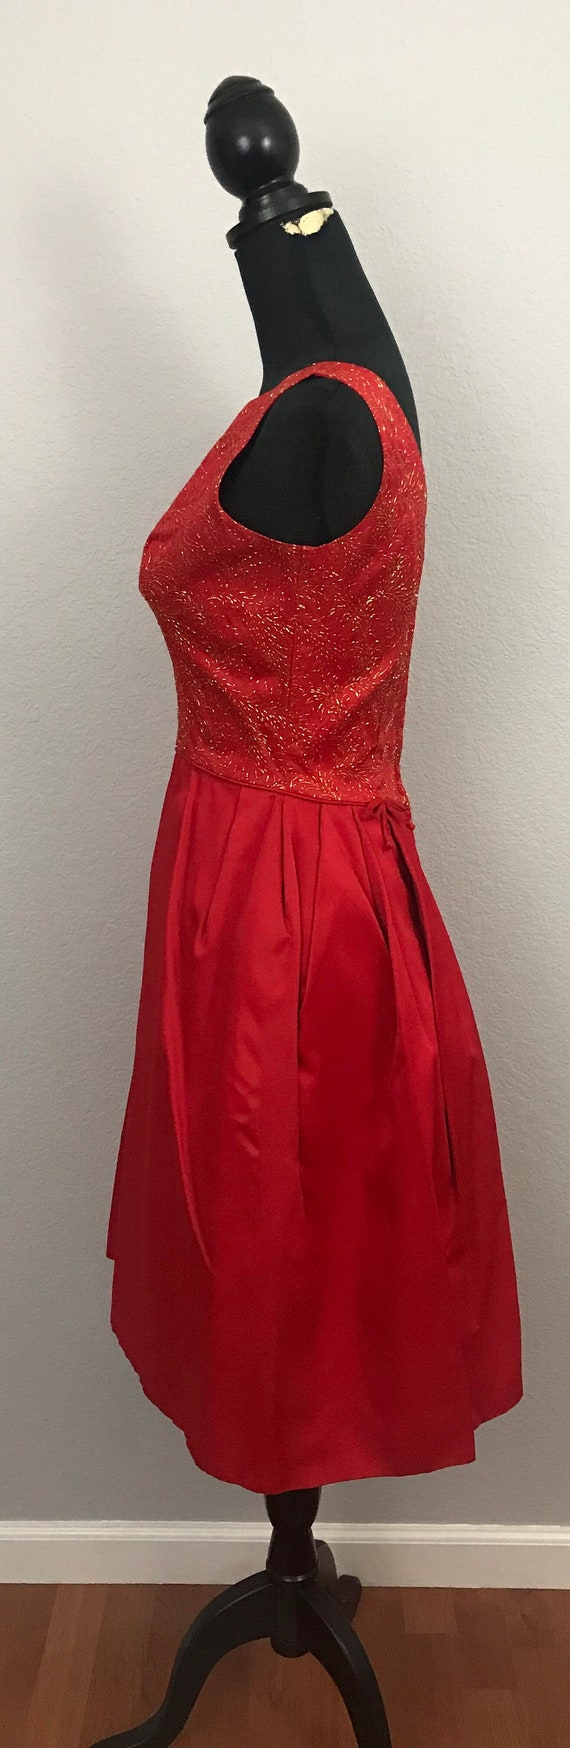 1950s red dress with gold lurex - image 6